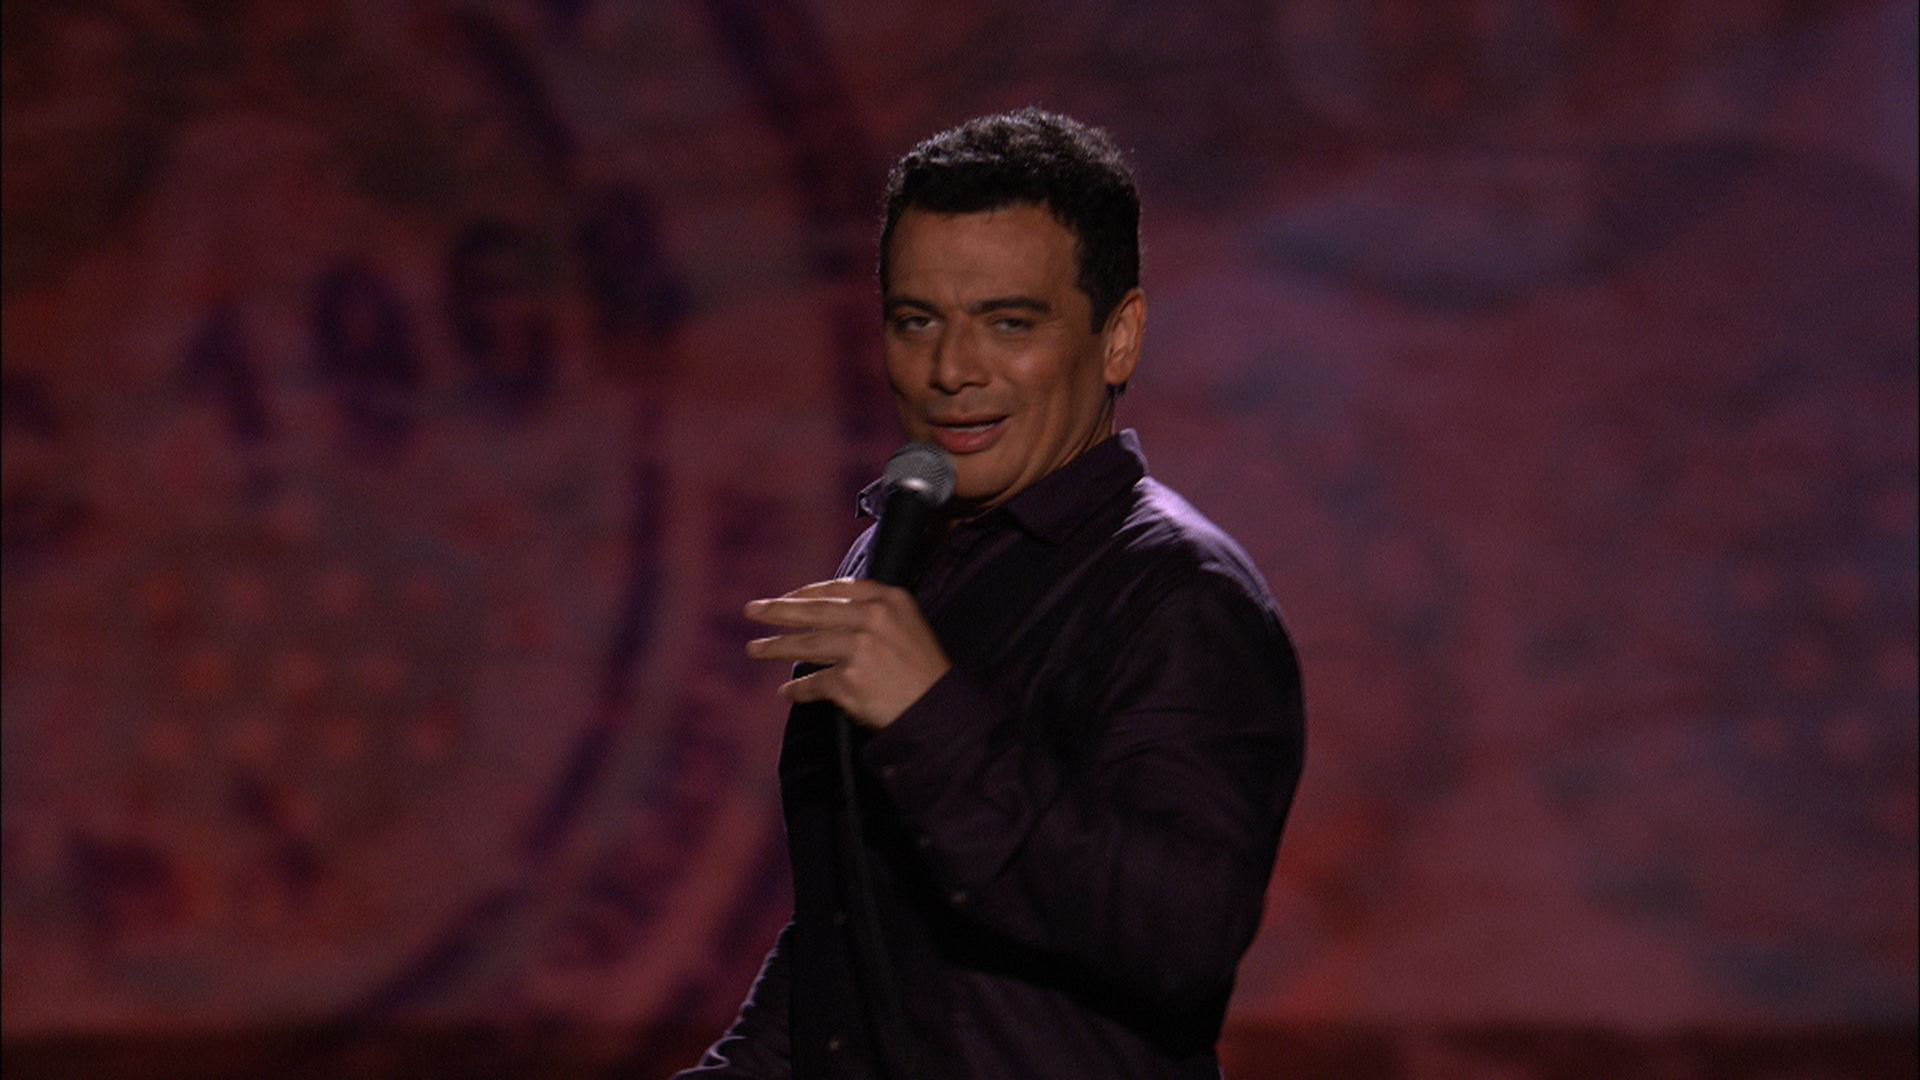 Uncensored - Carlos Mencia - Barack Obama Joke